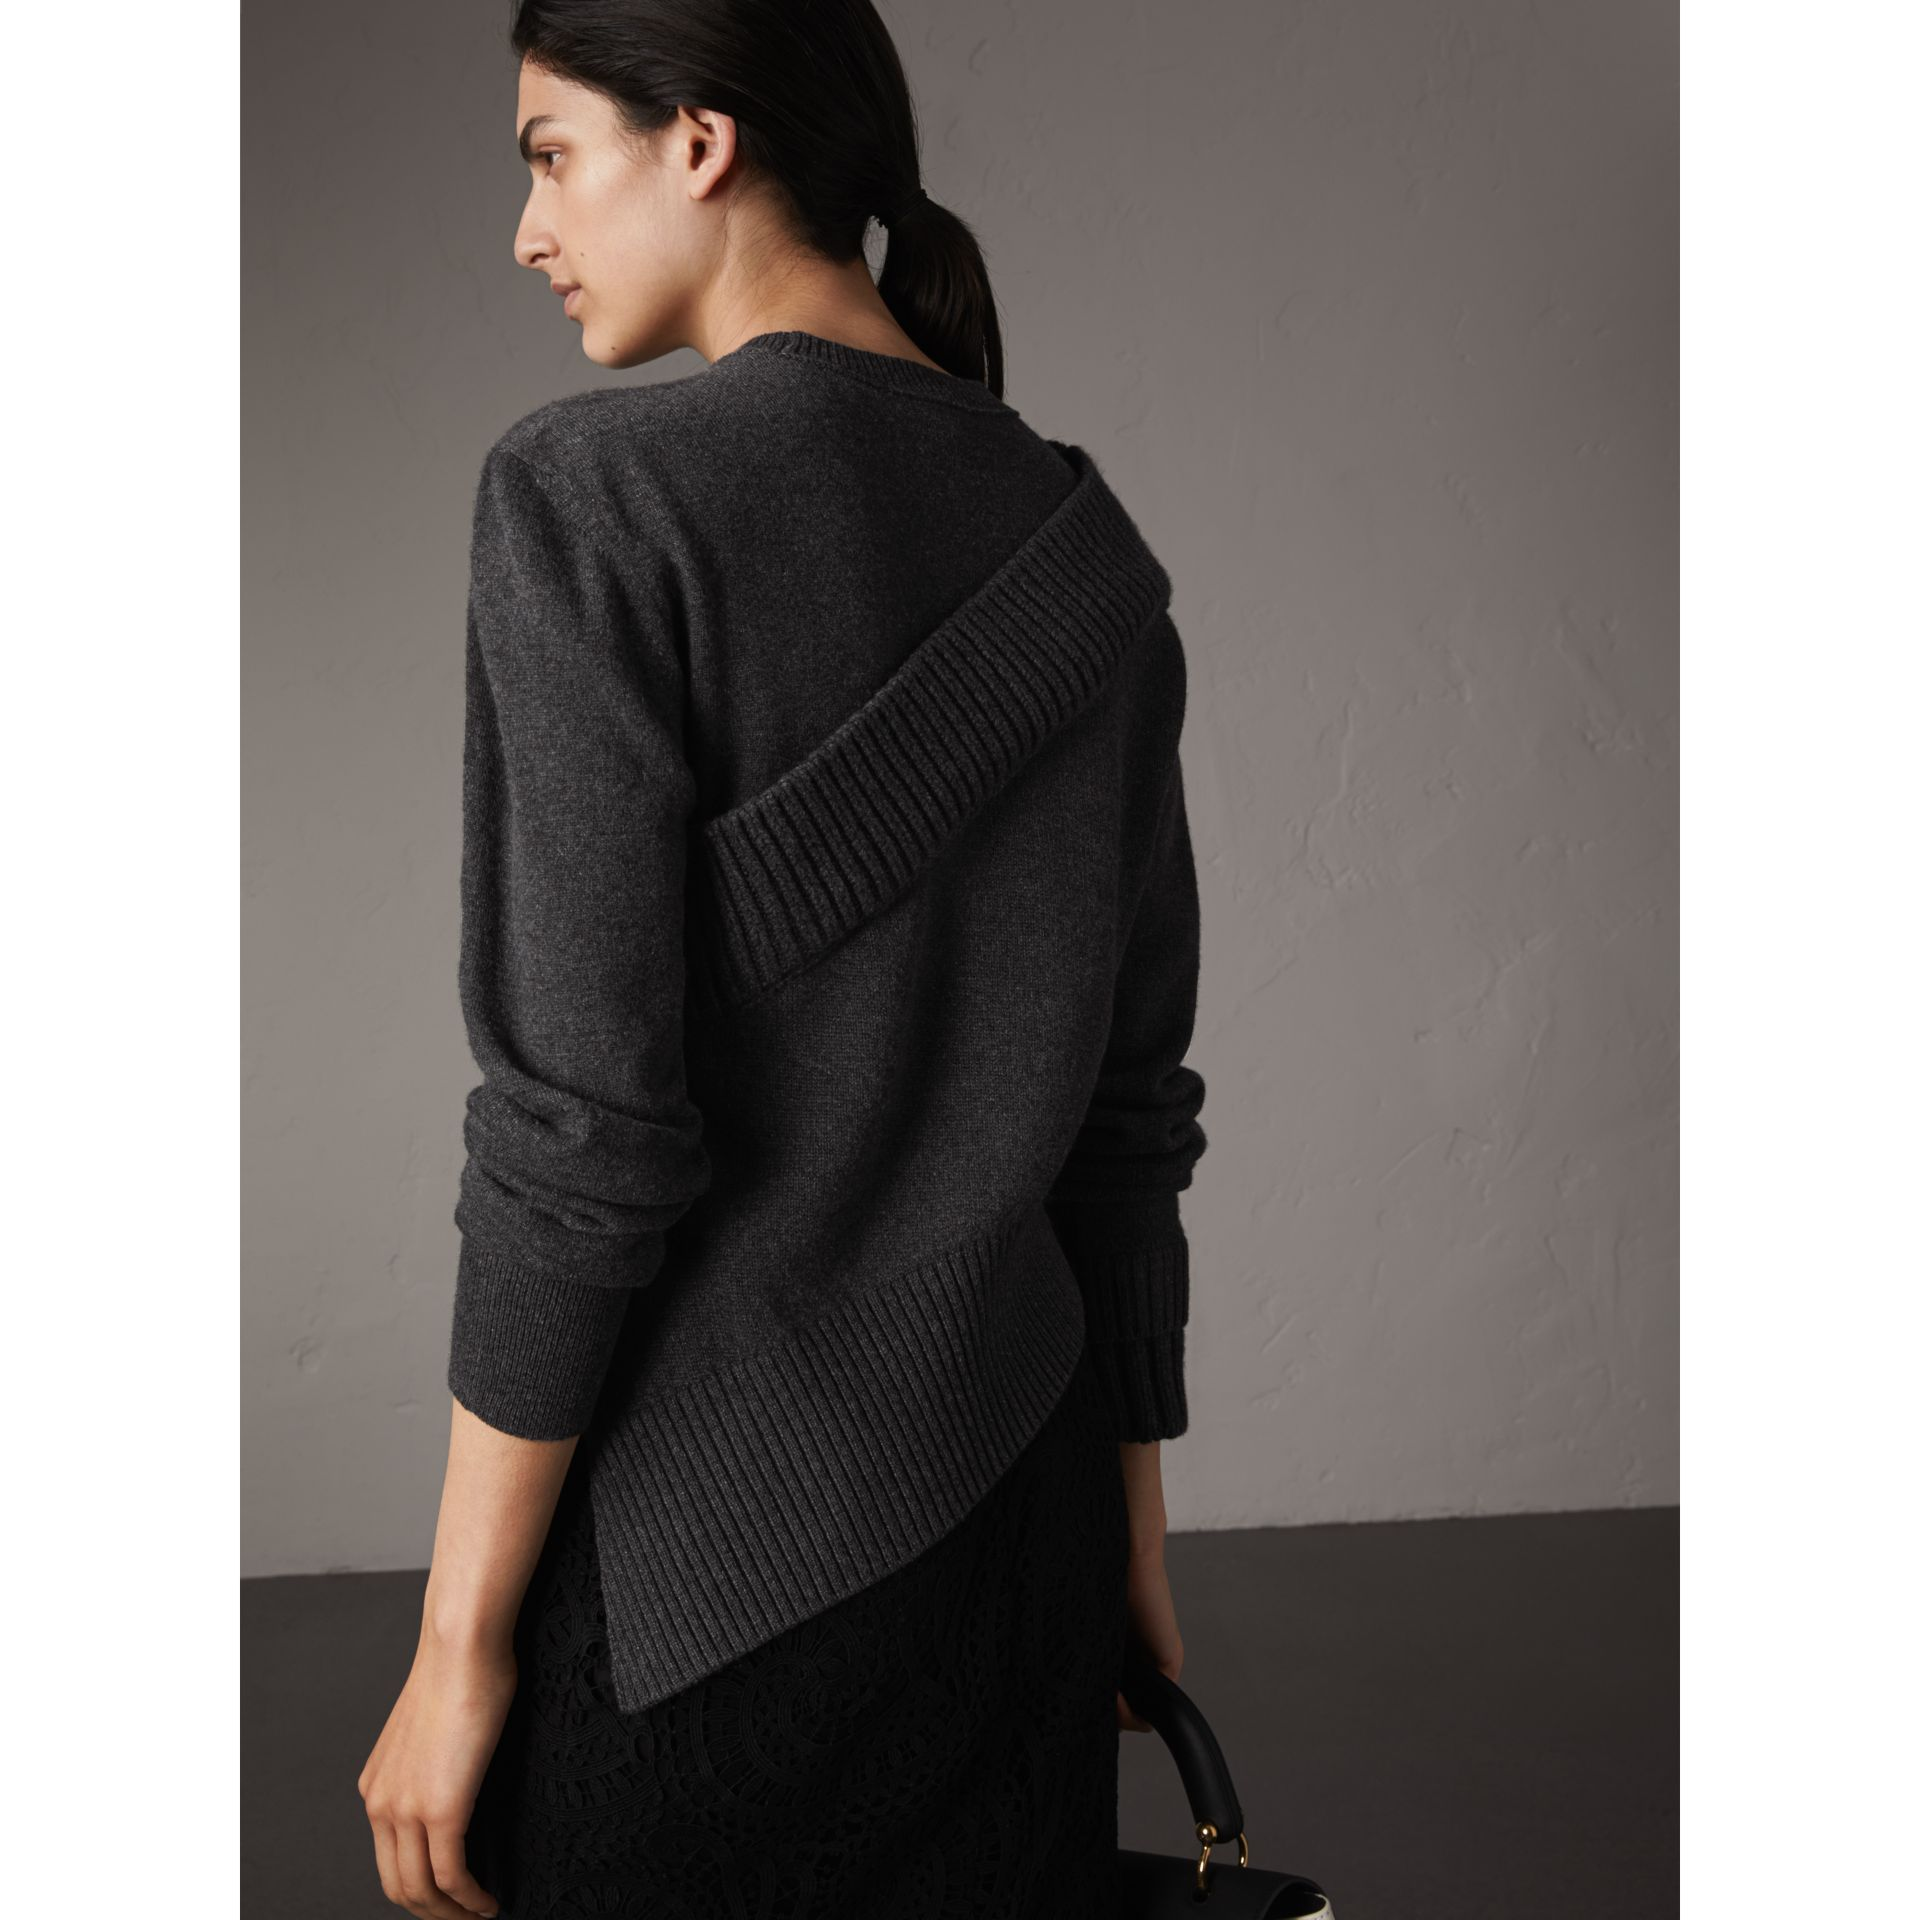 Rib Knit Detail Cashmere Asymmetric Sweater in Charcoal - Women | Burberry - gallery image 2